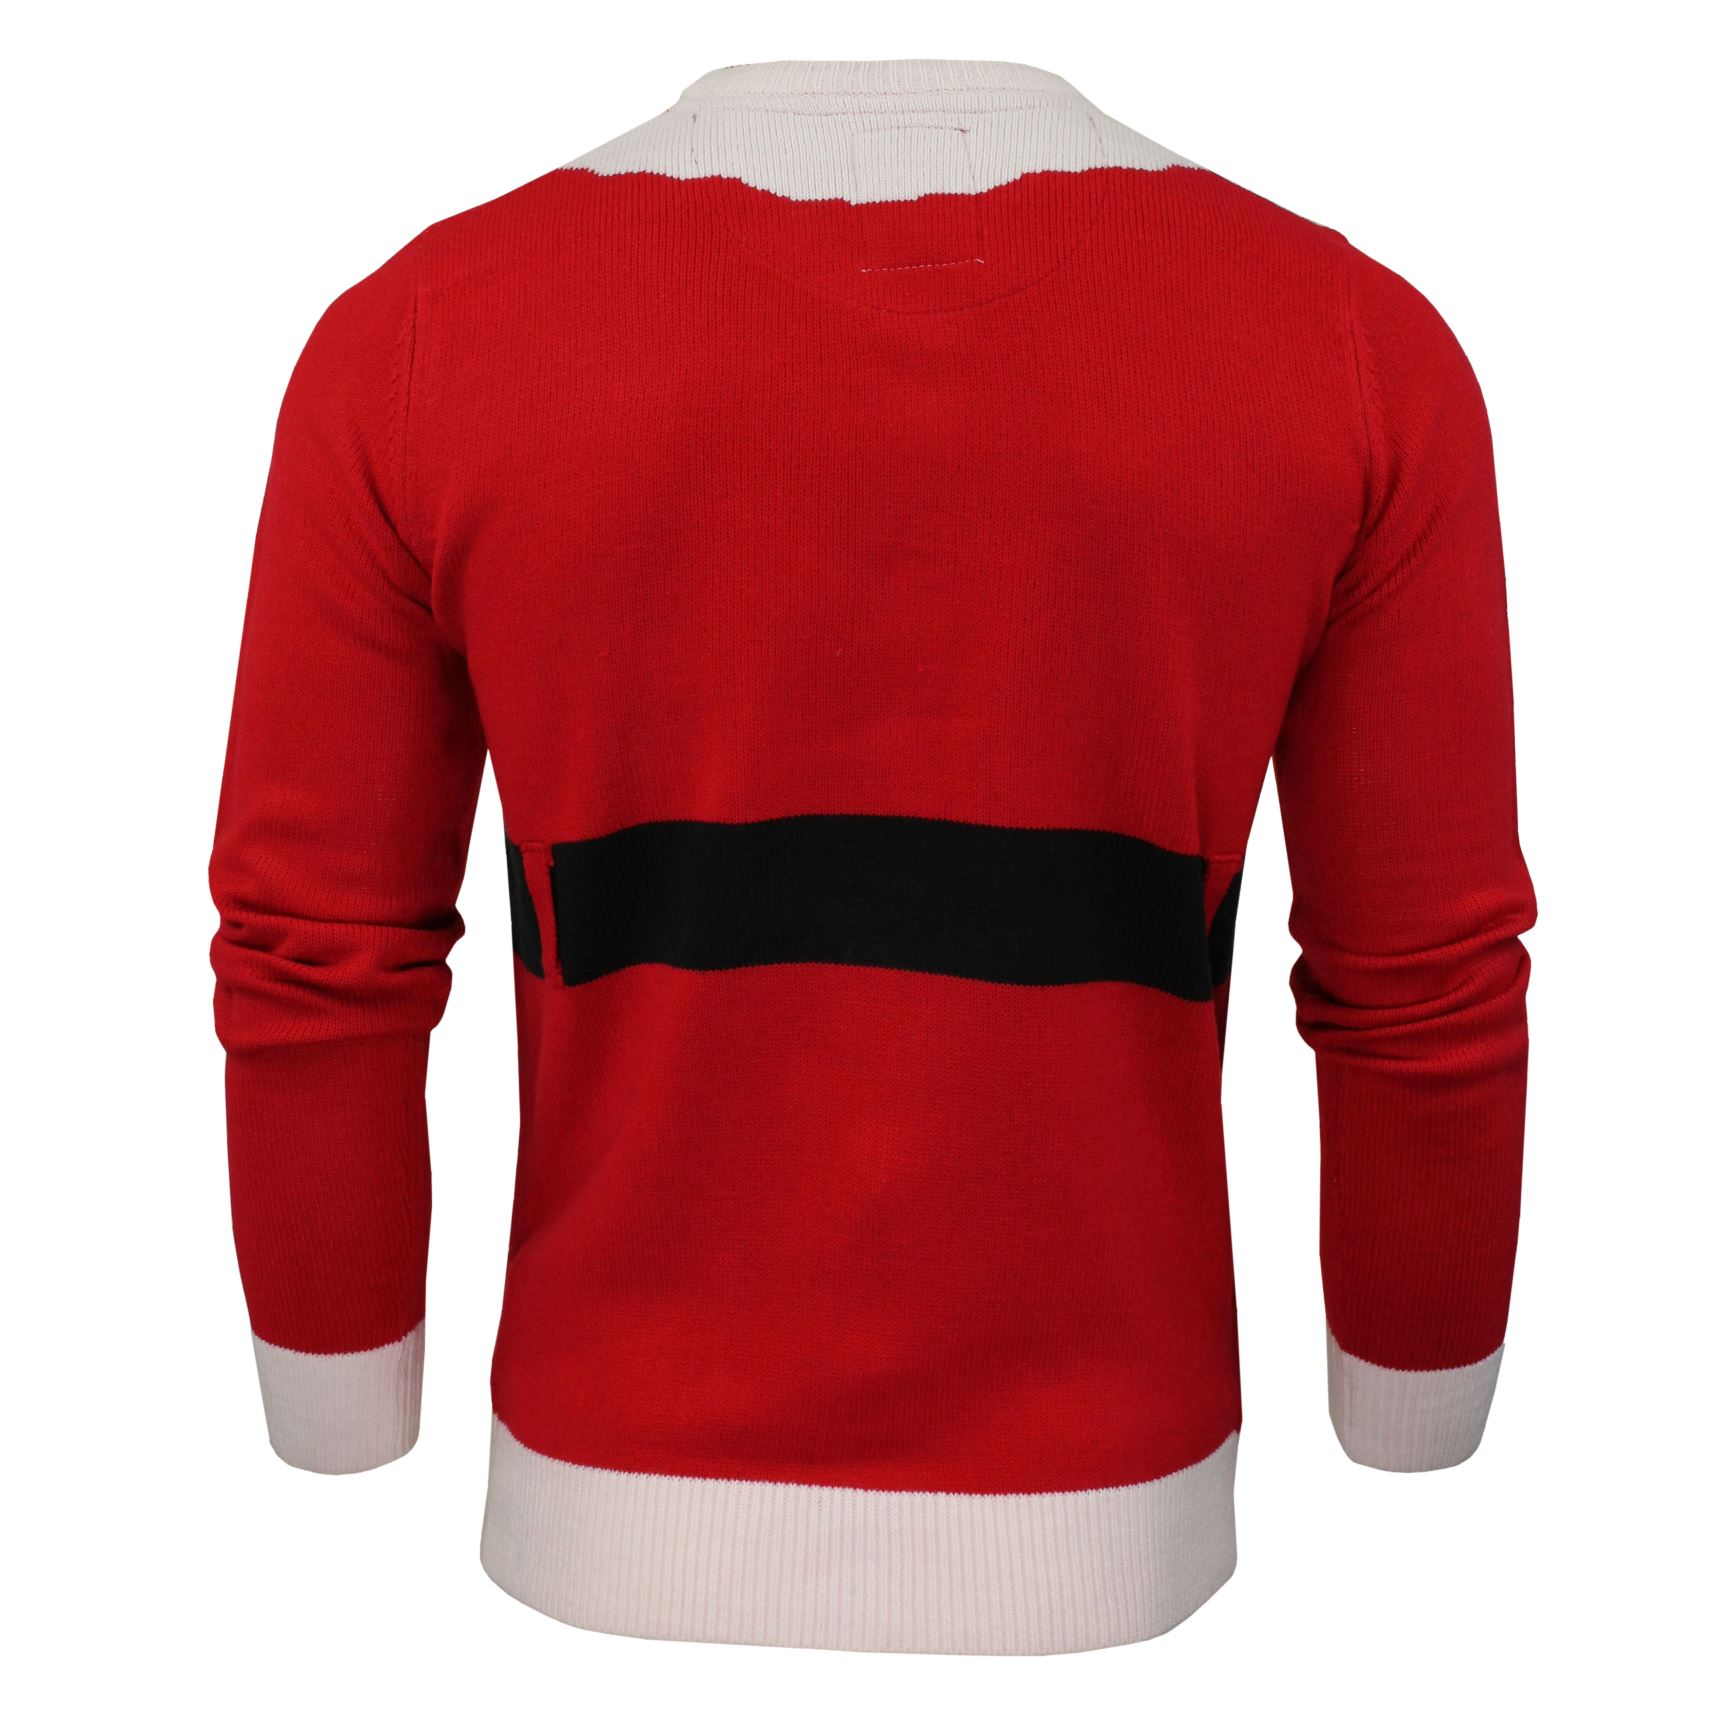 herren weihnachts xmas pullover von brave soul ebay. Black Bedroom Furniture Sets. Home Design Ideas